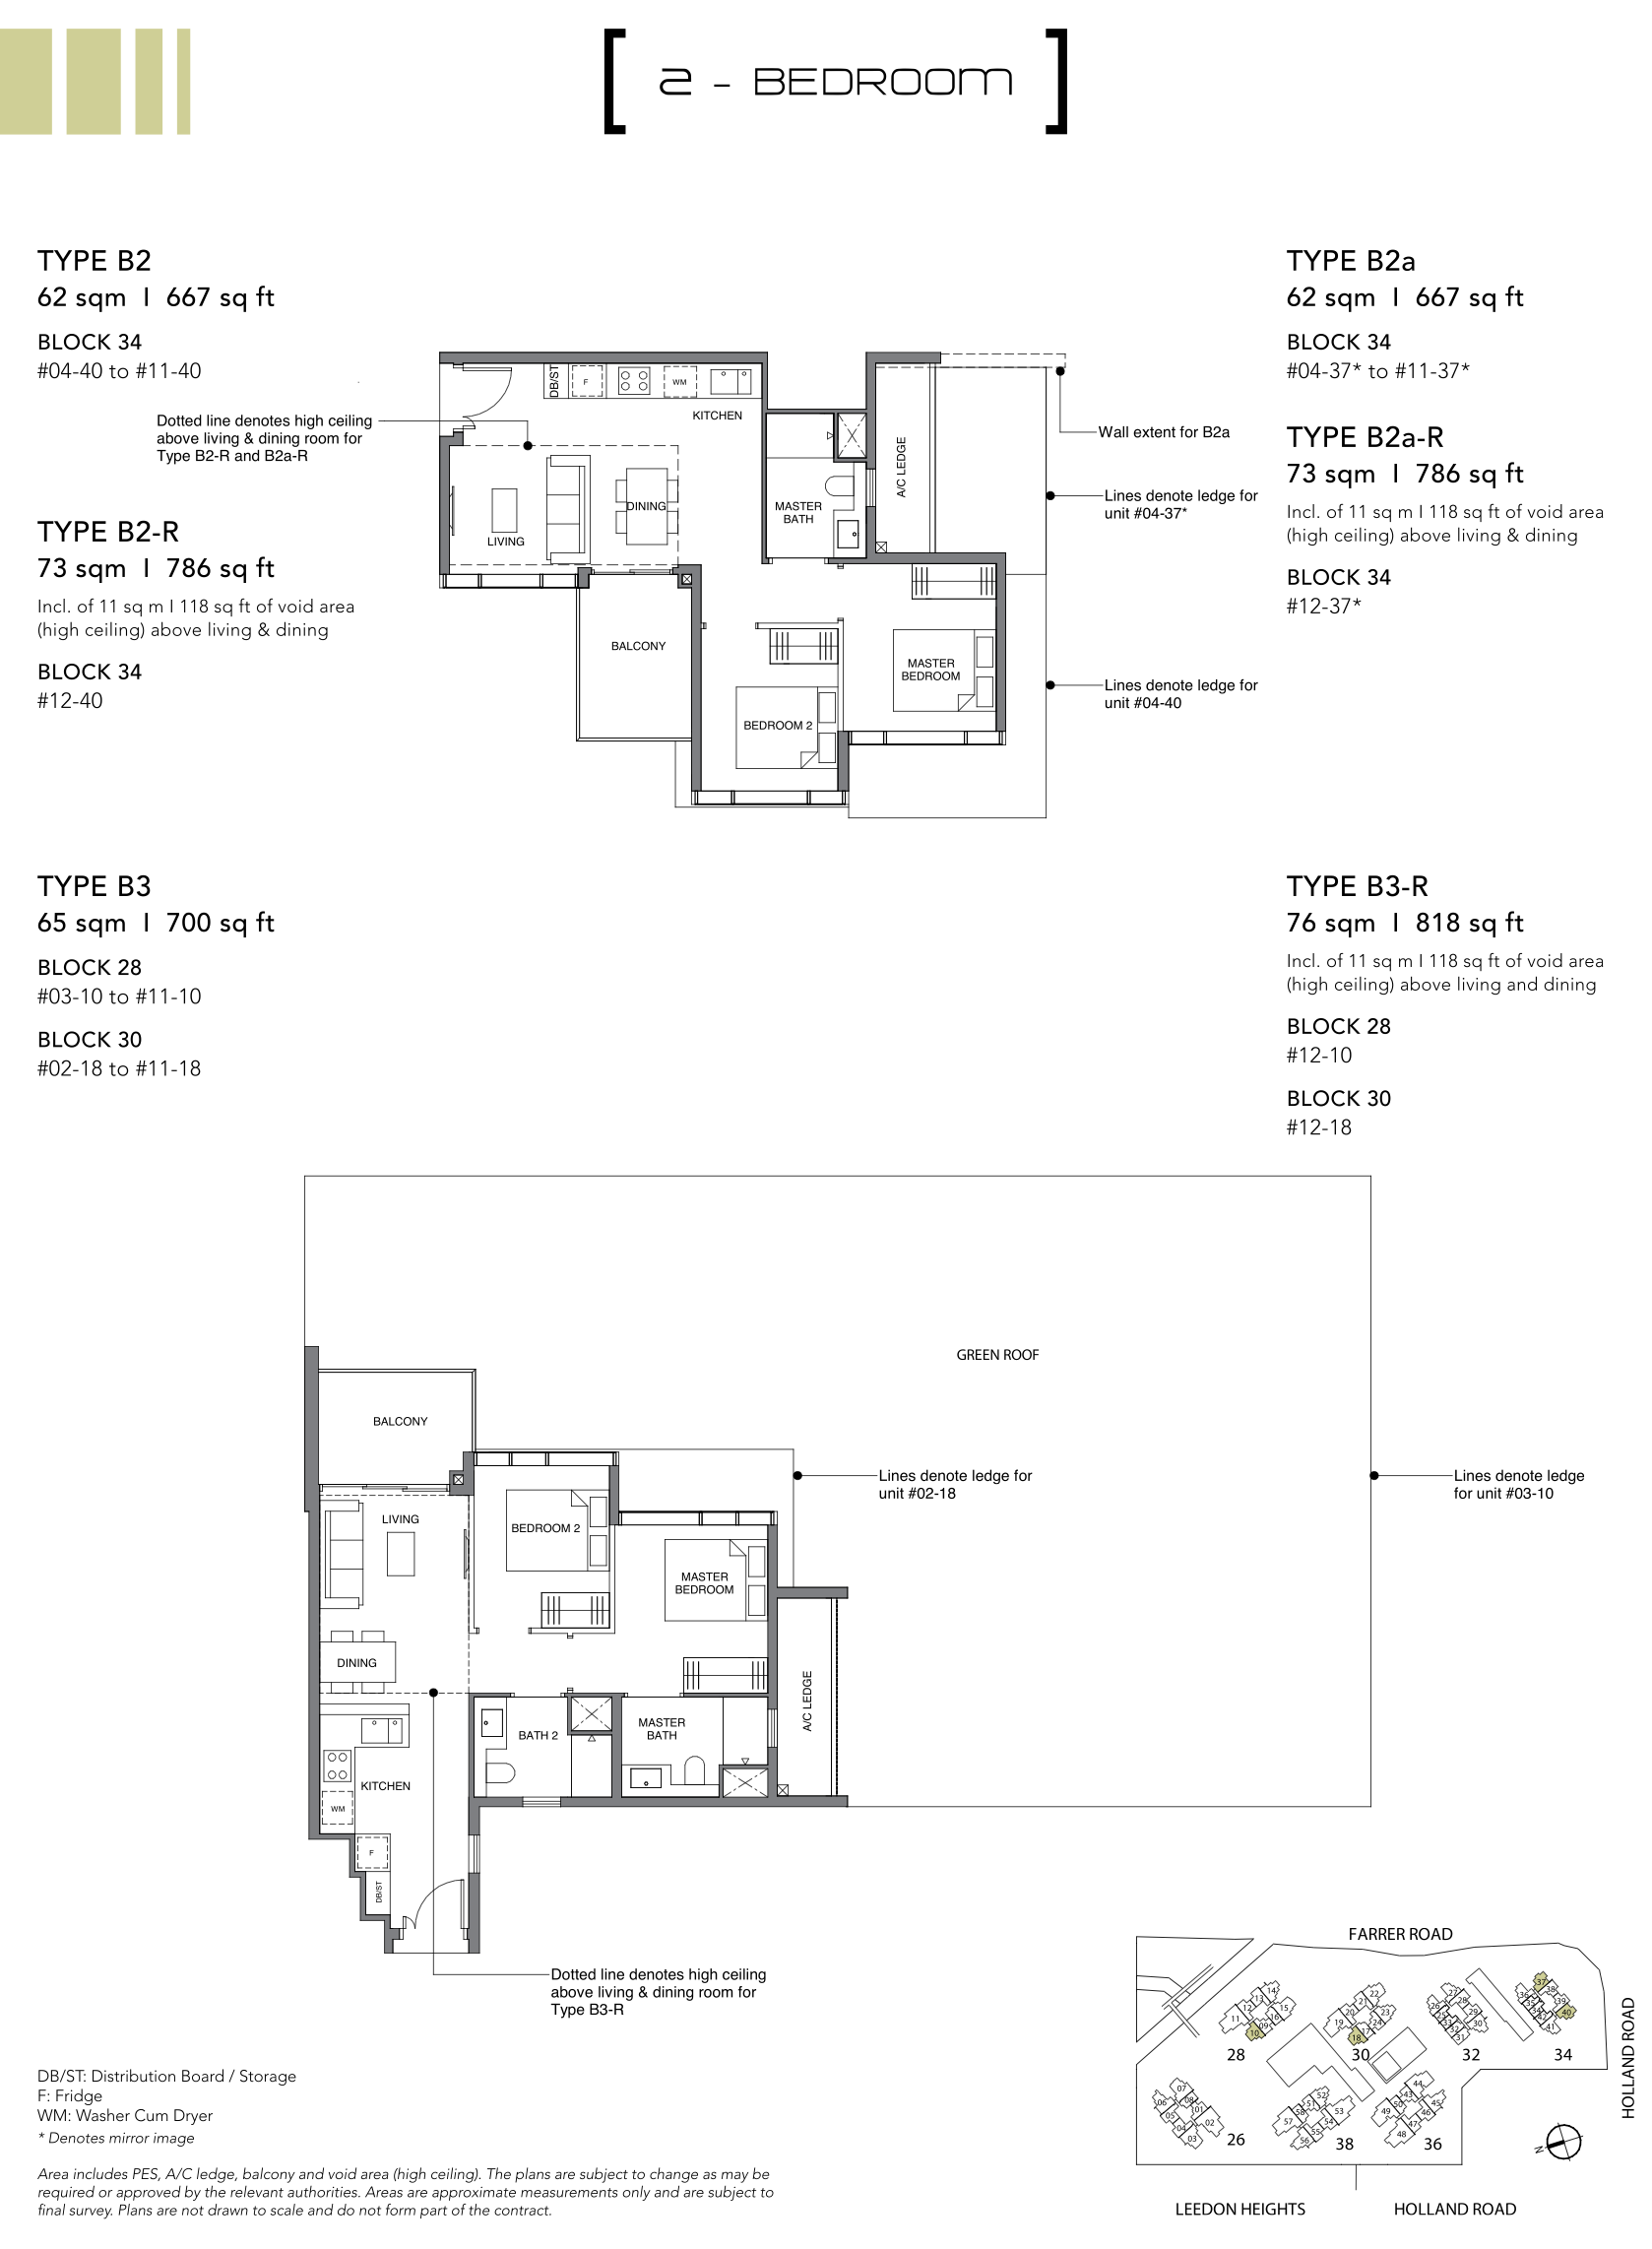 绿墩雅苑公寓户型图 Leedon Green floor plan 2 bedroom b2-b3